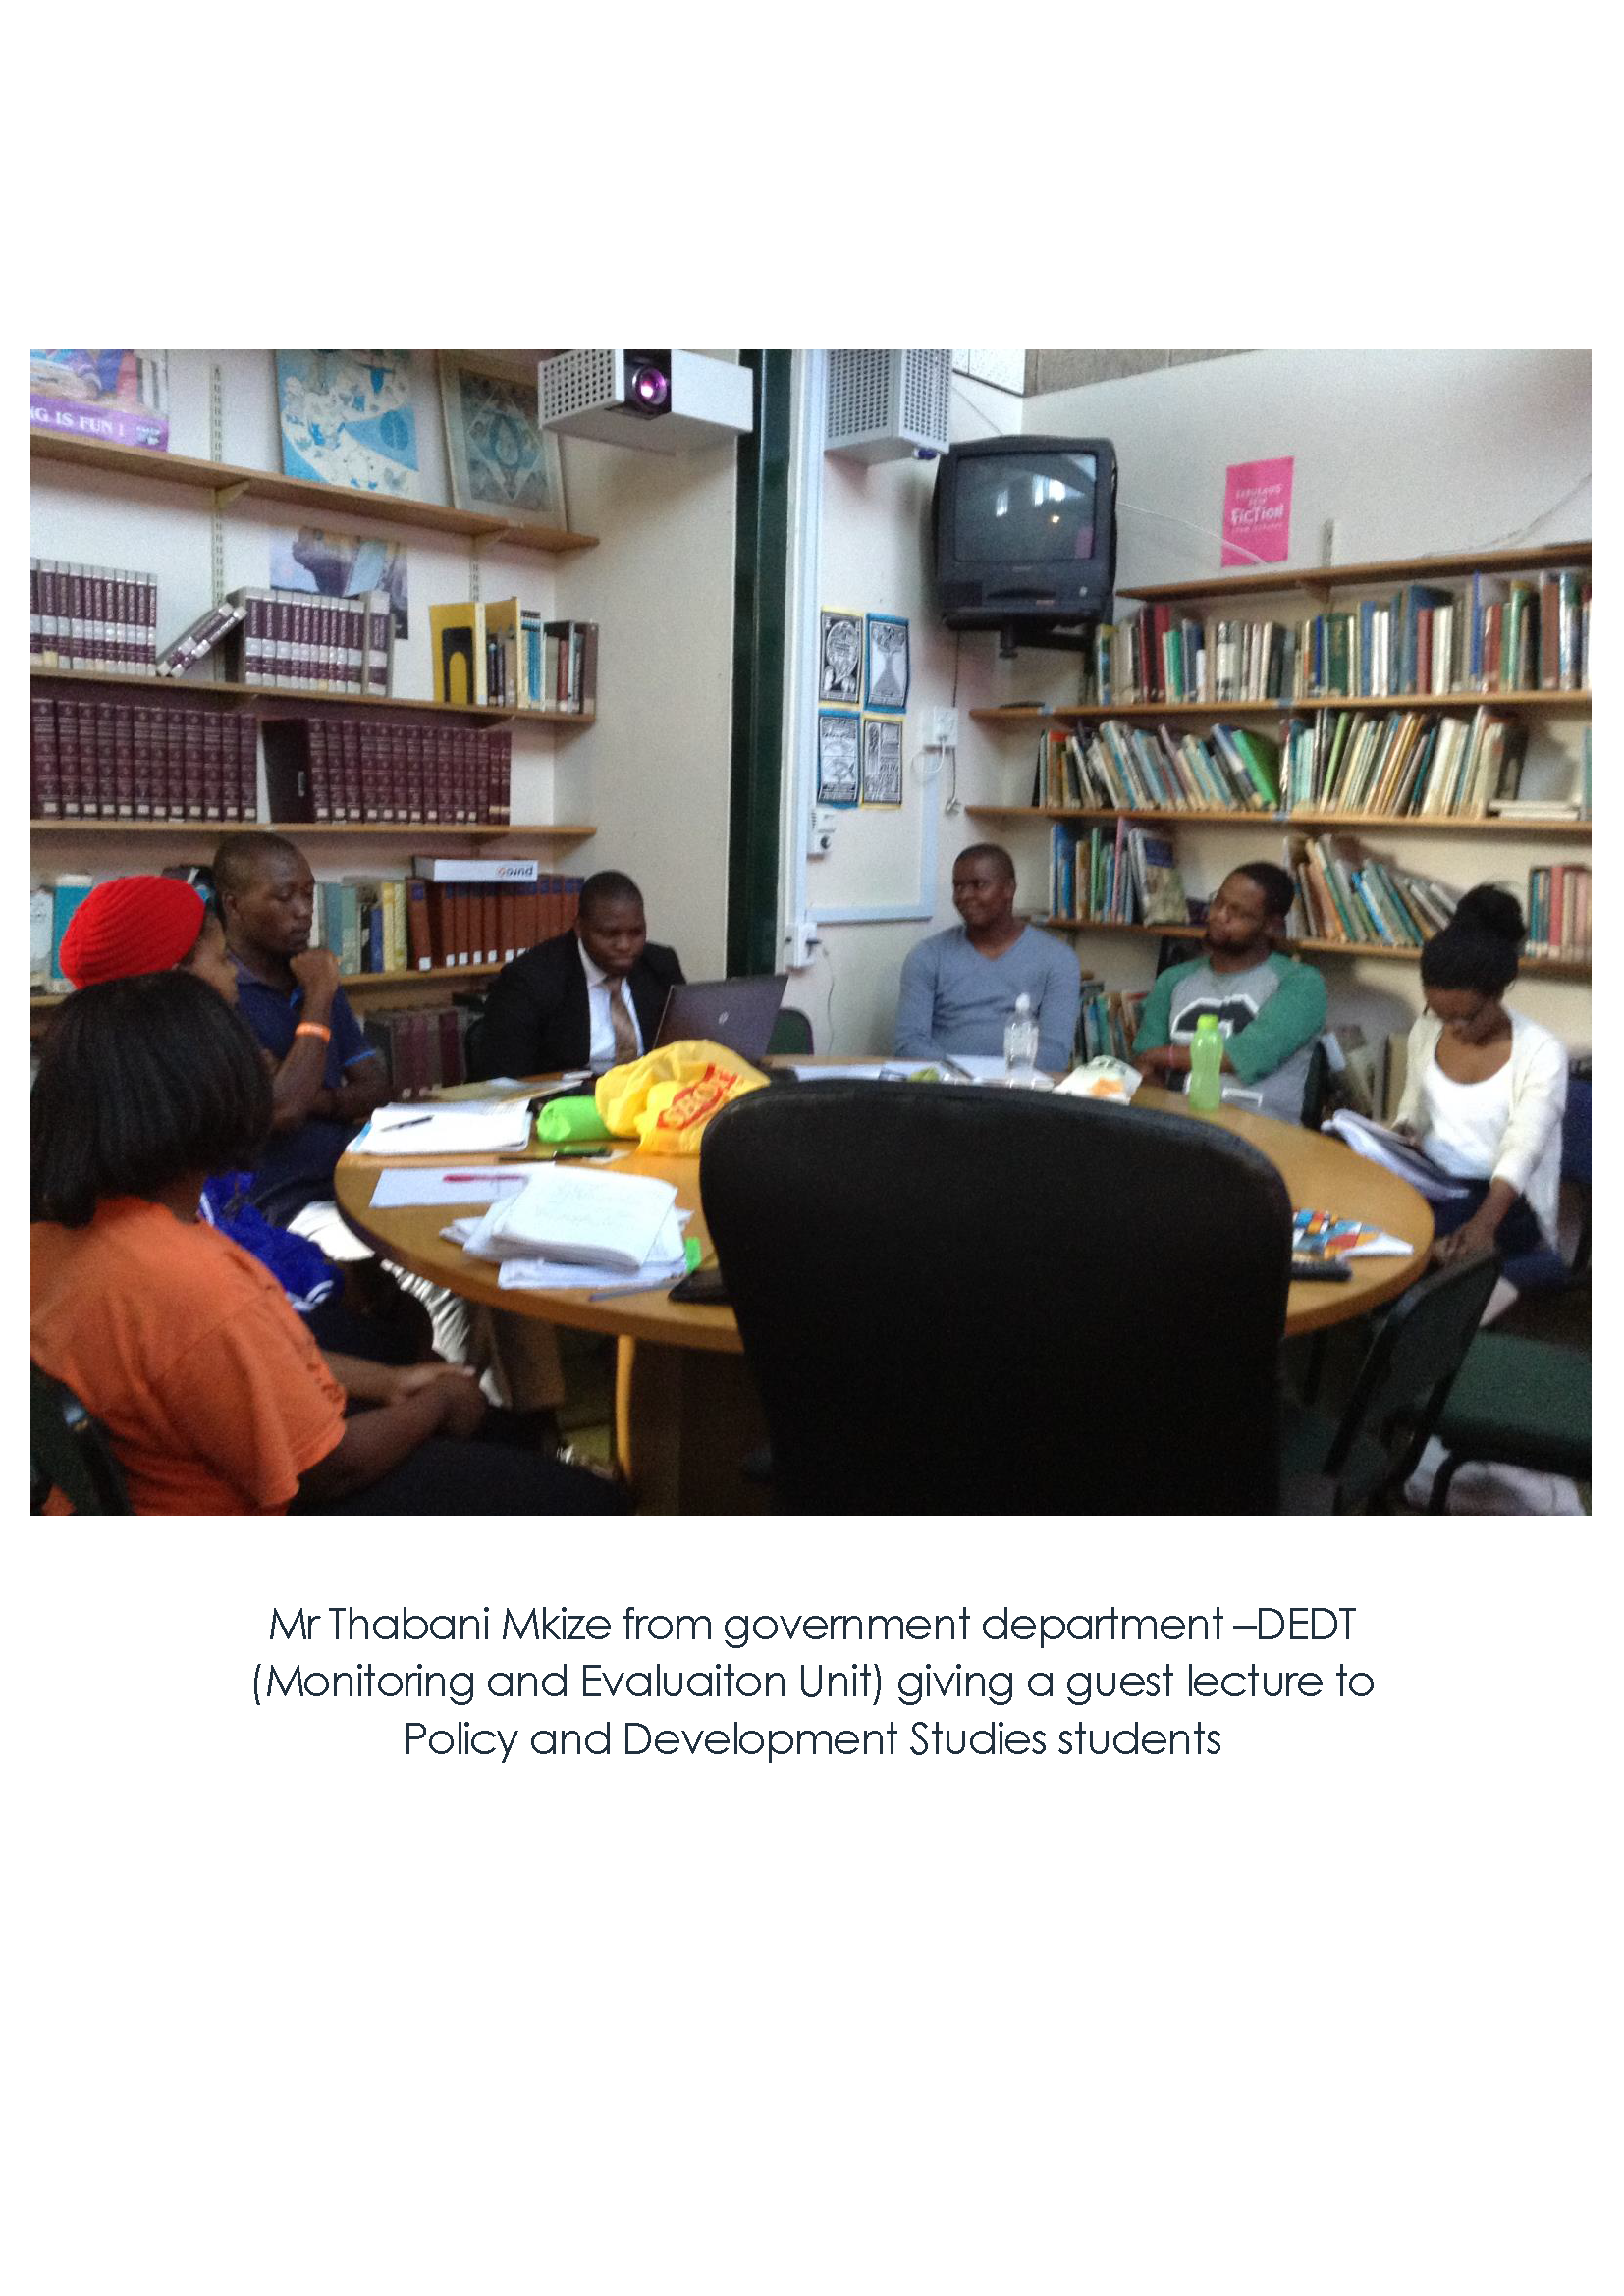 Policy and Development Studies guest lecture by Mr Thabani Mkize (Government Department –DEDT)